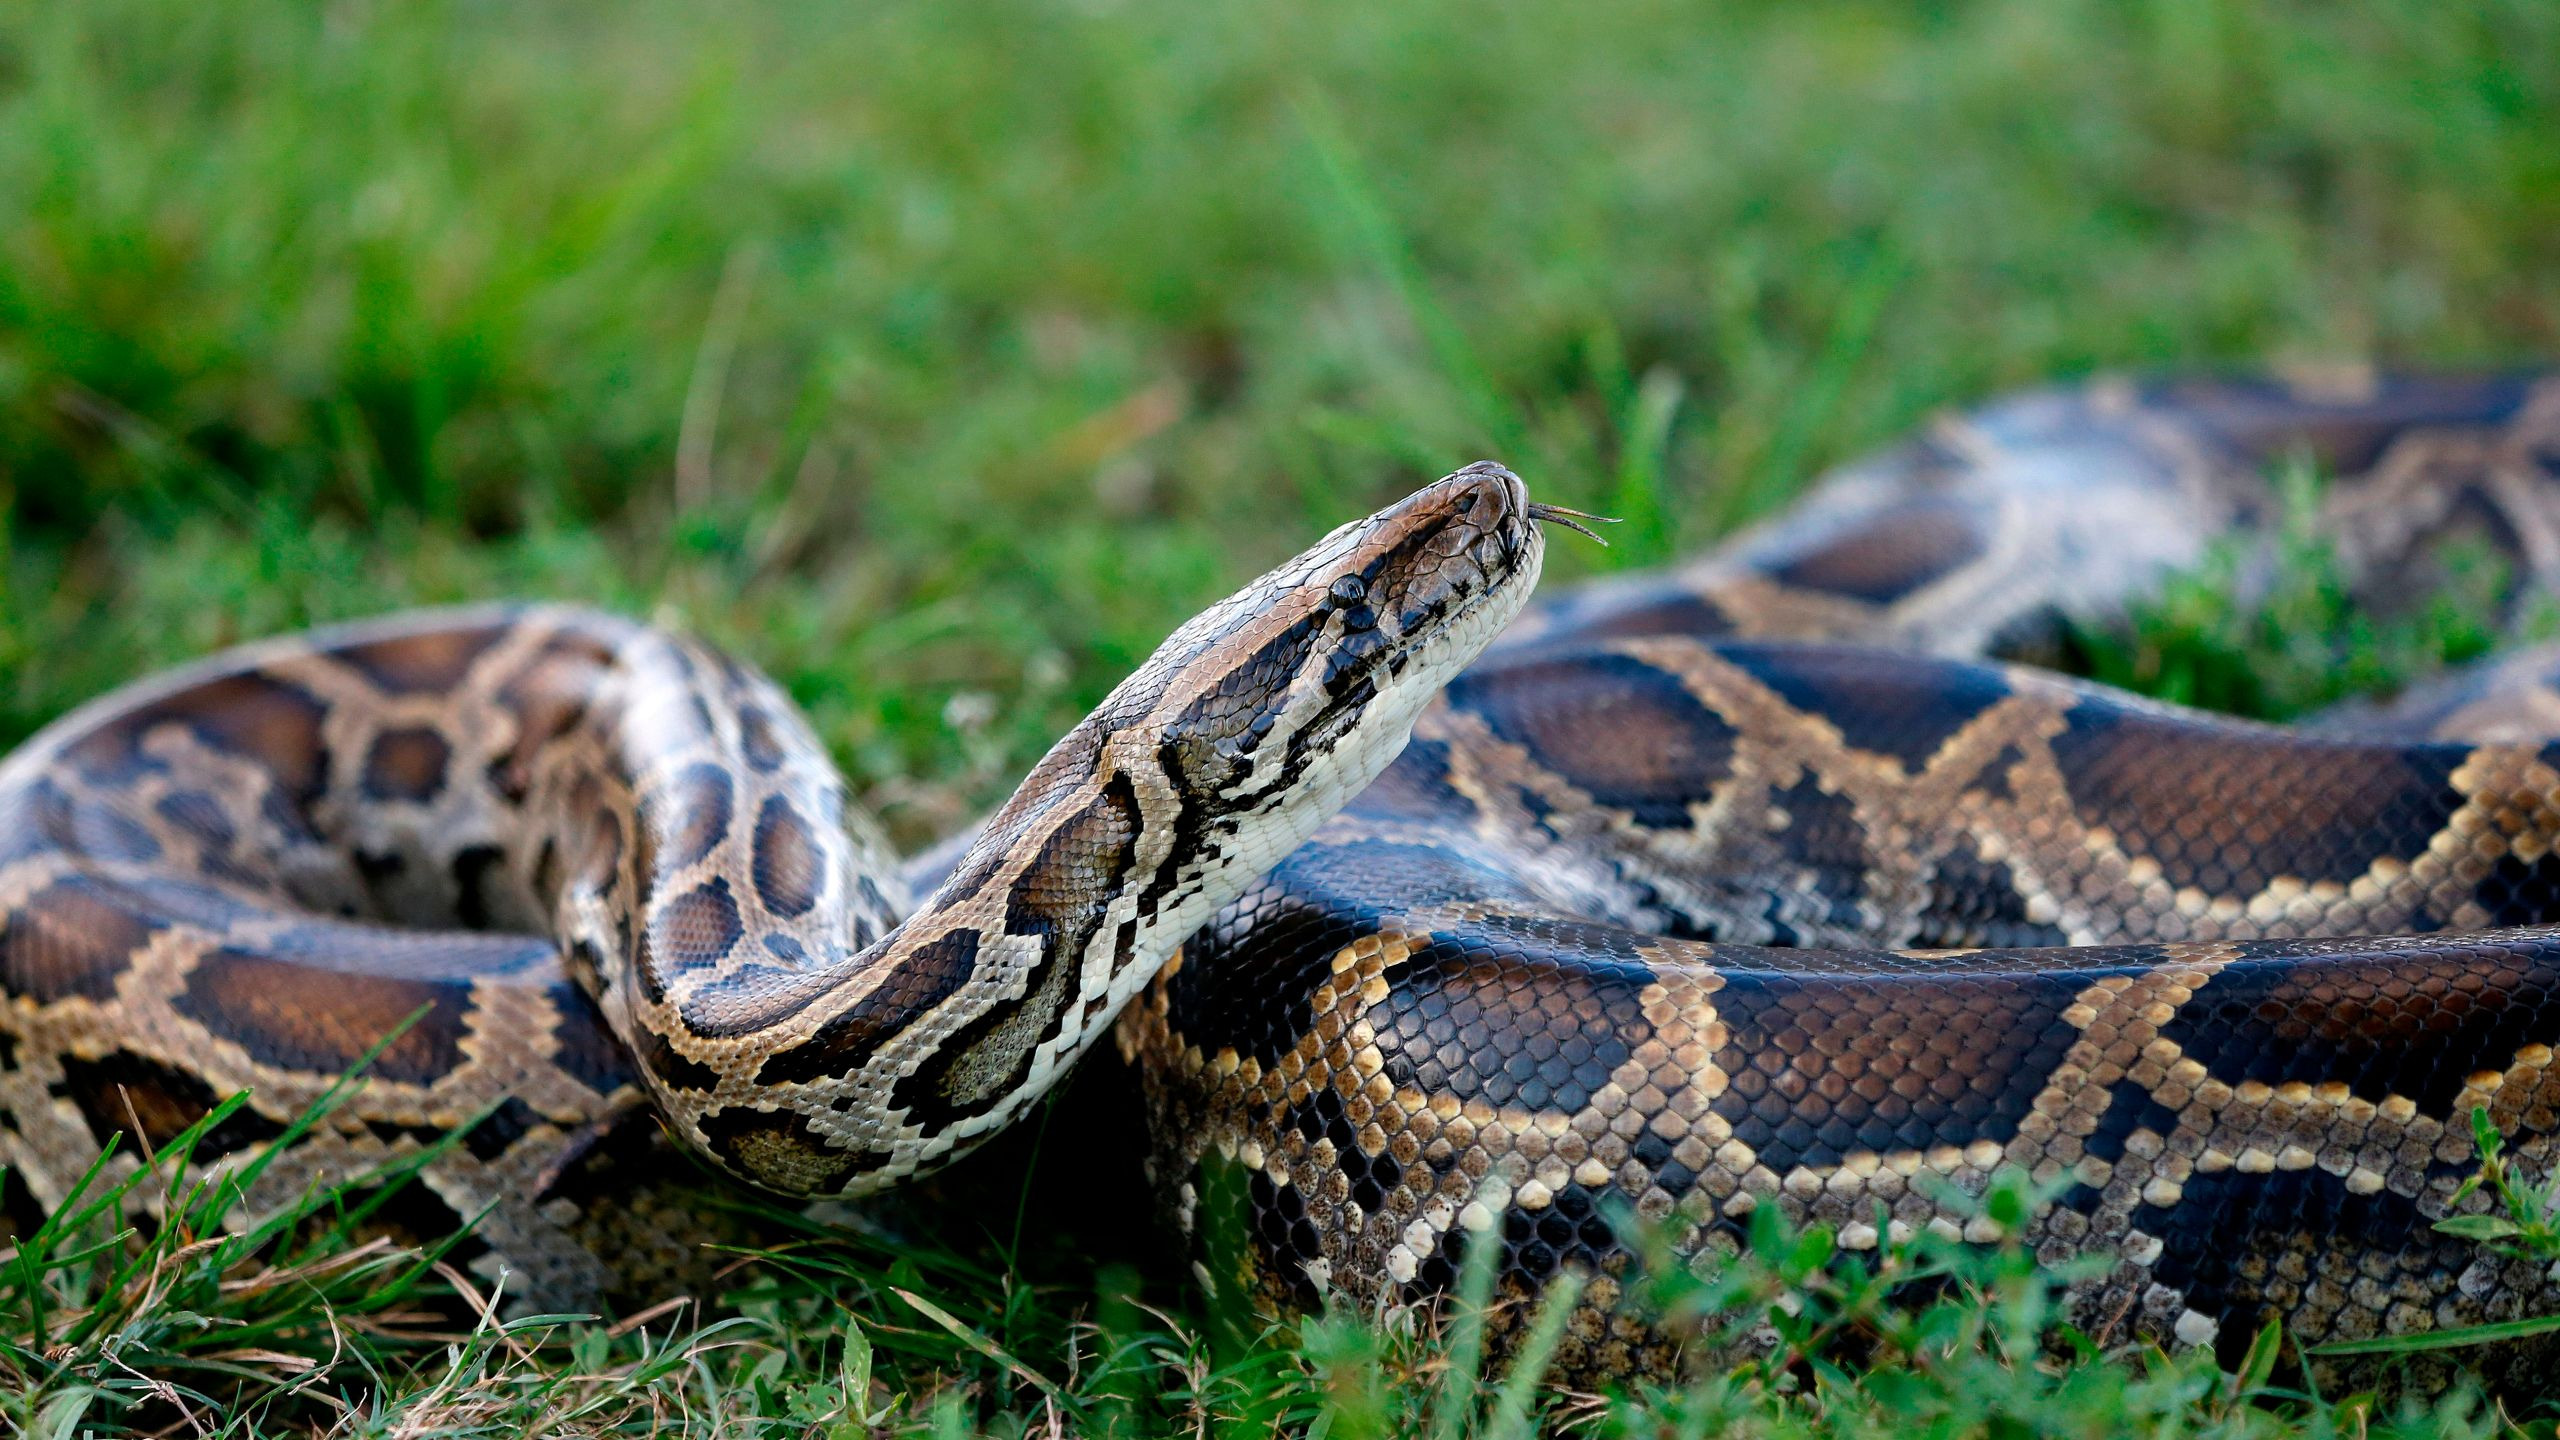 A Burmese python sits in the grass at Everglades Holiday Park in Fort Lauderdale, Florida, on April 25, 2019. (Credit: Rhona Wise / AFP / Getty Images)